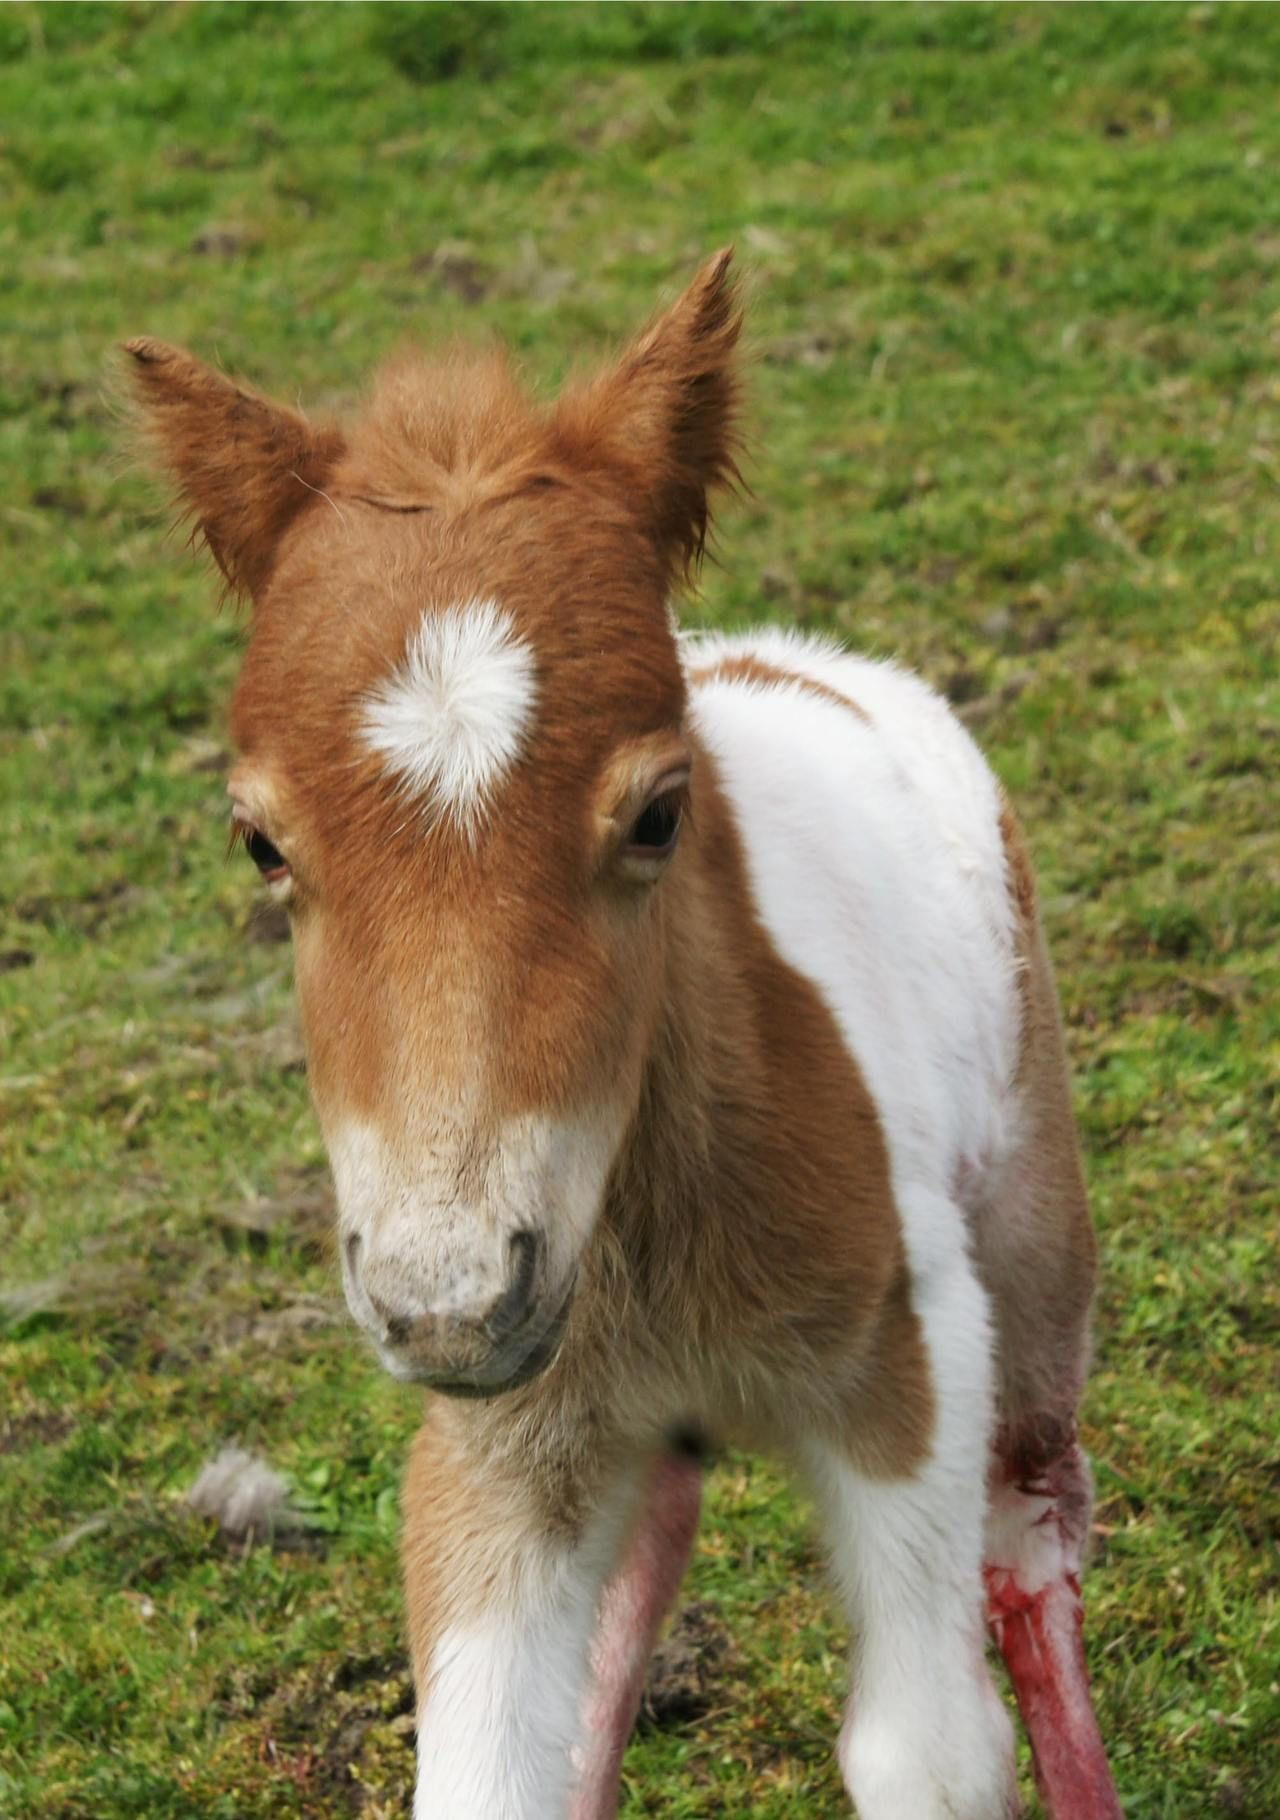 johnny's blog — brygarth Photos of Beth's new foal! The